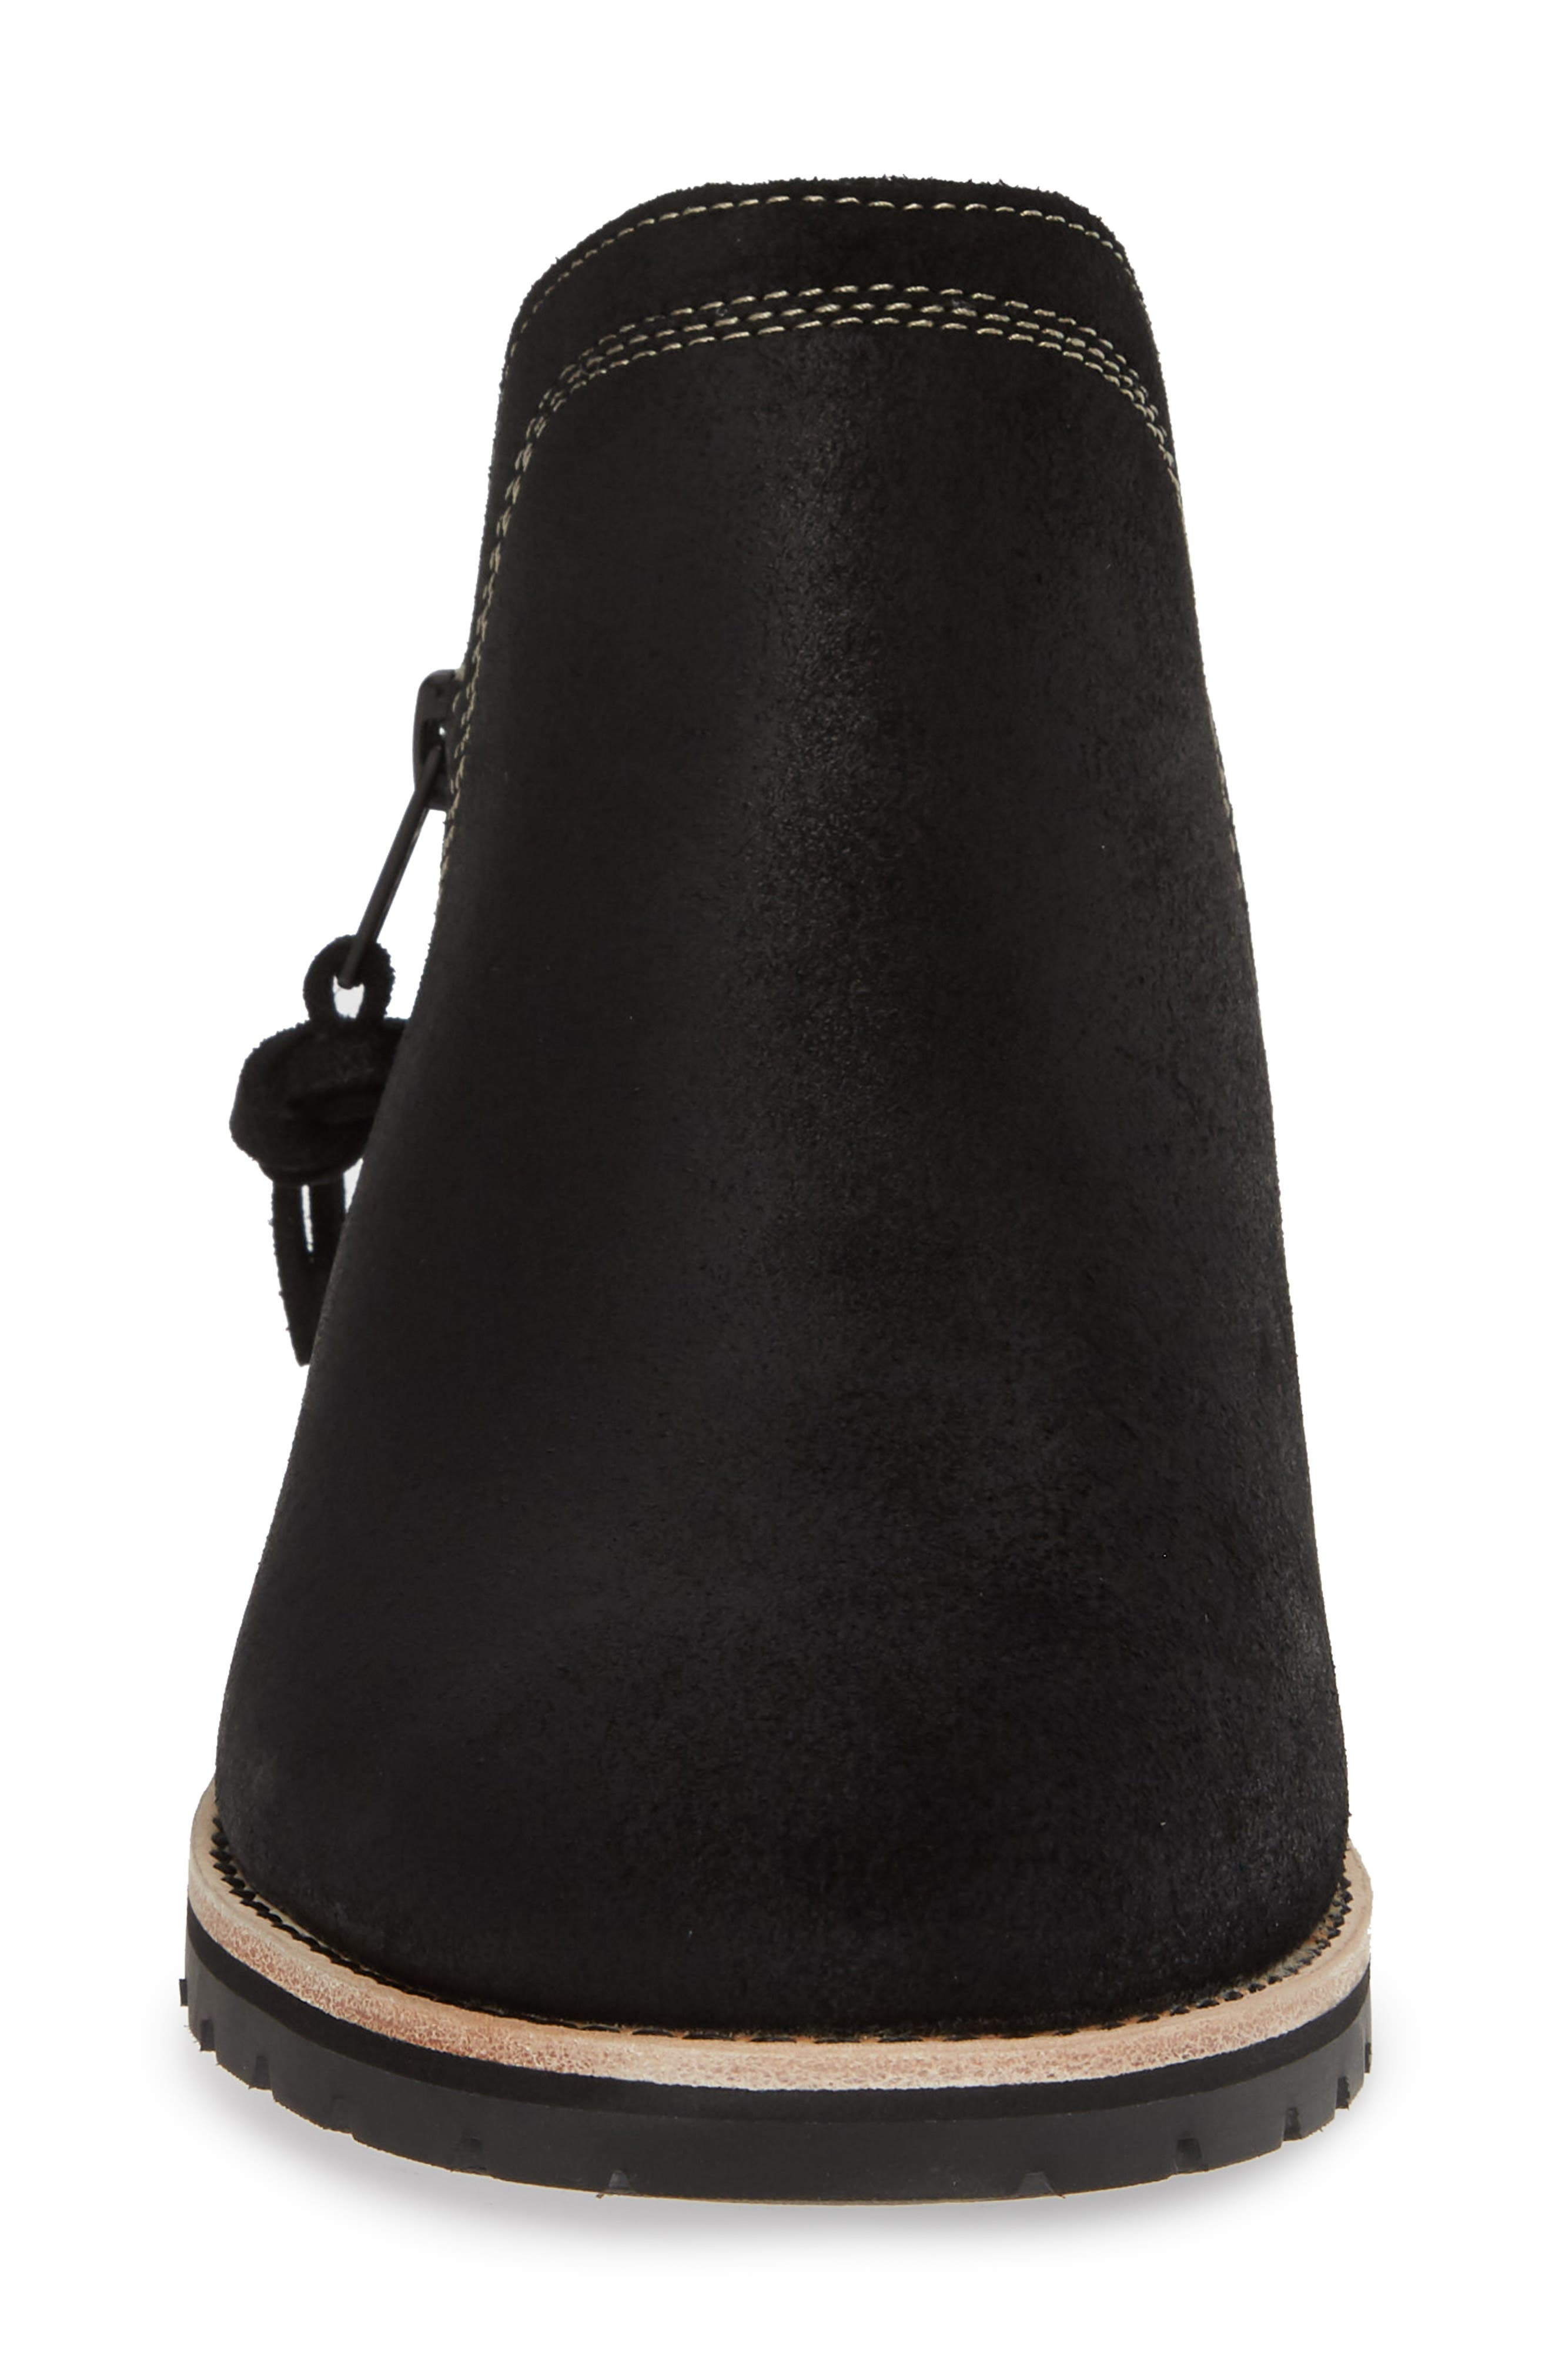 Bly Waterproof Bootie,                             Alternate thumbnail 4, color,                             BLACK SUEDE